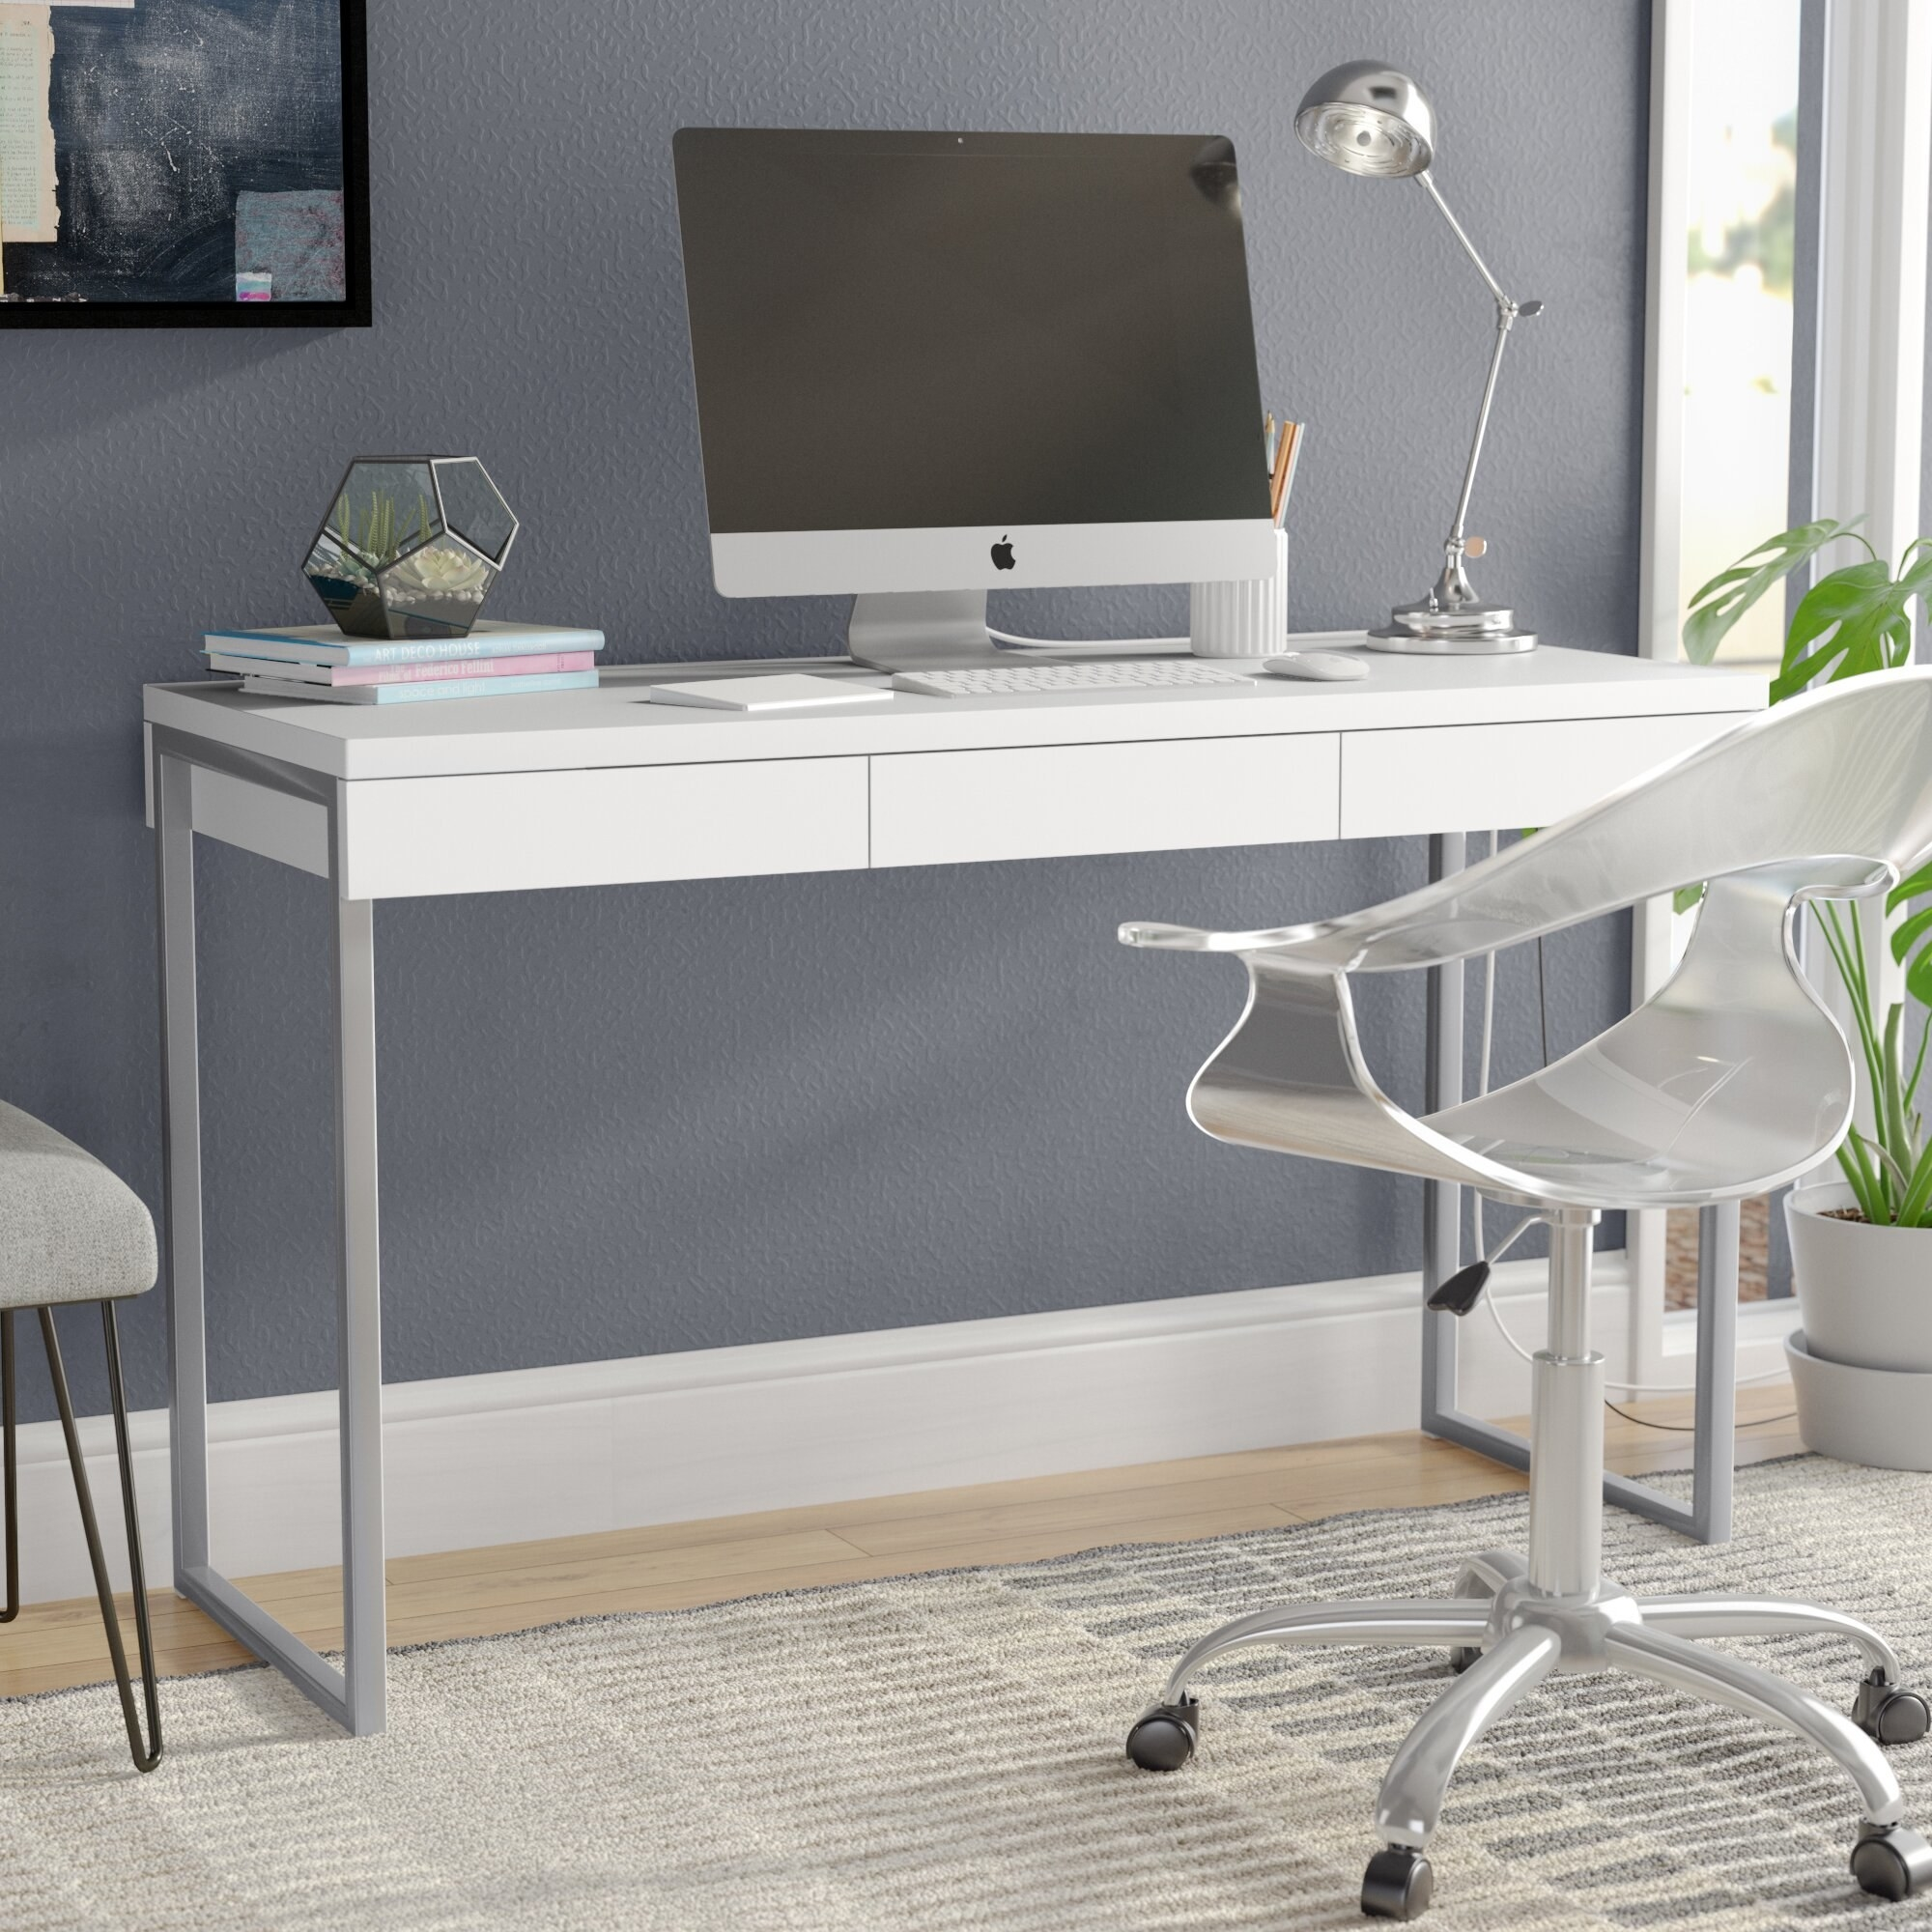 A white desk with silver legs and three little drawers